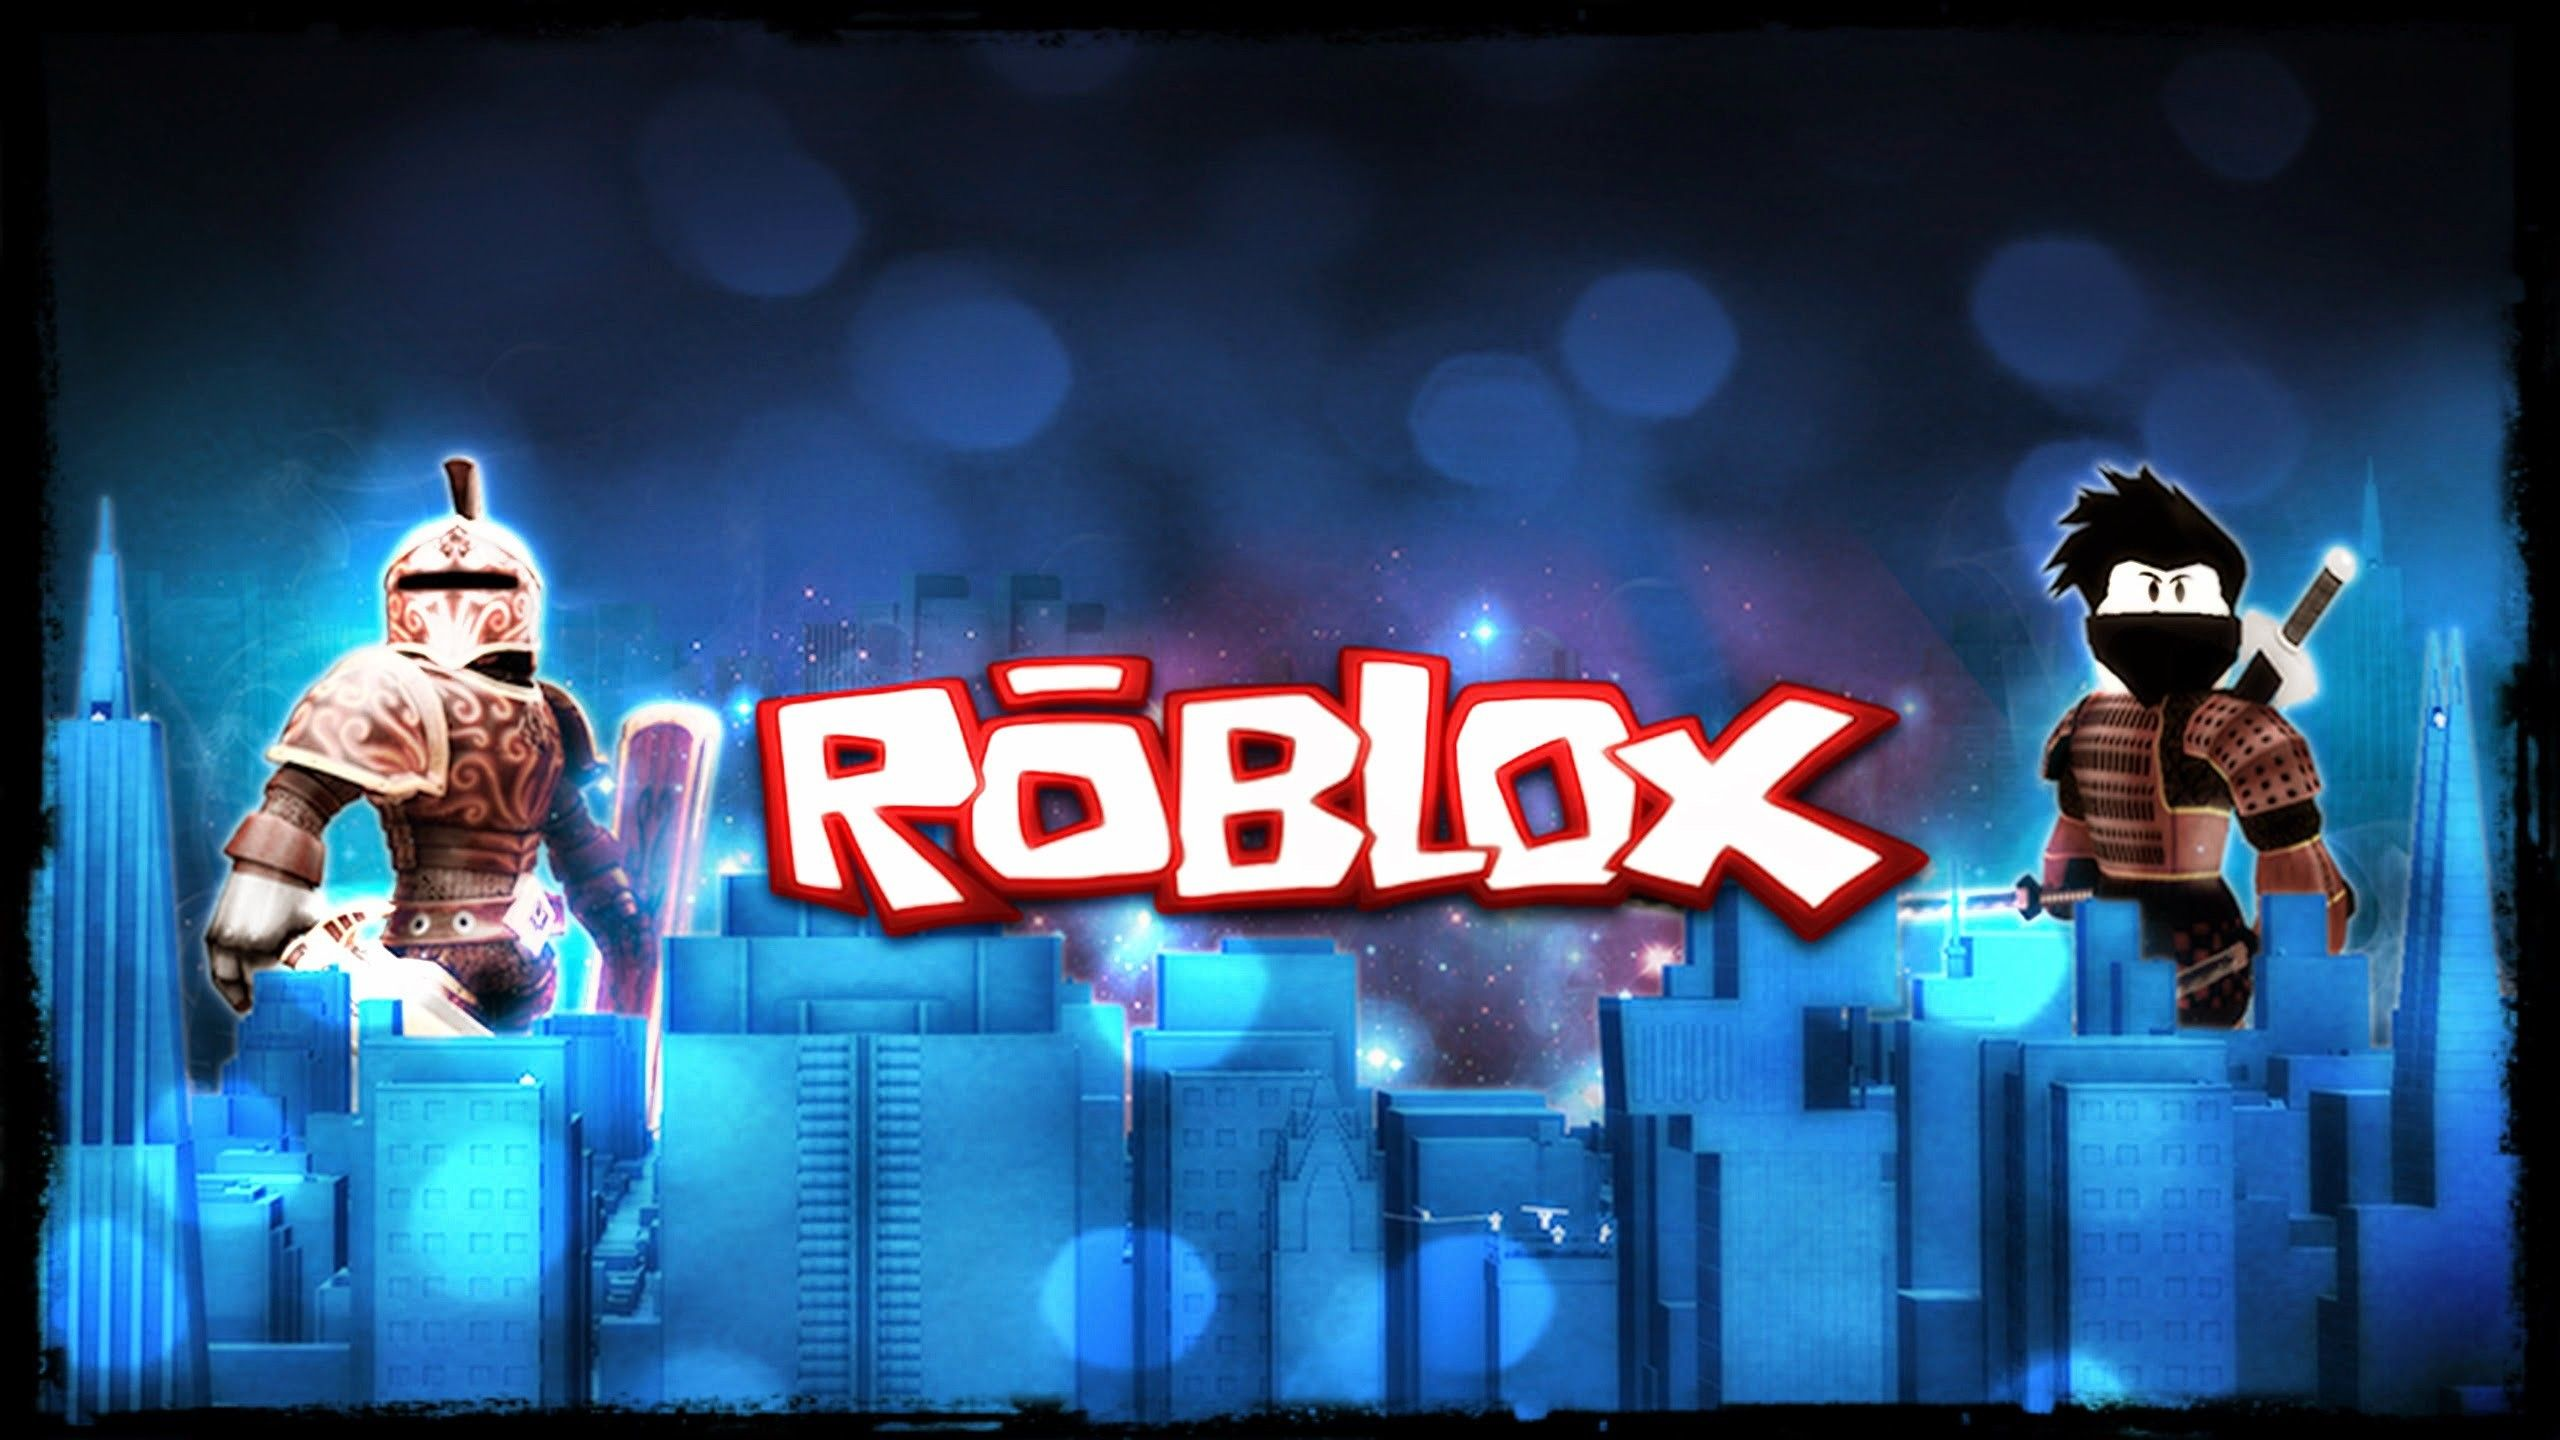 2560x1440 9 Best Roblox Posters And Wallpaper Images On Pinterest Birthday Roblox Ios Games Game Cheats